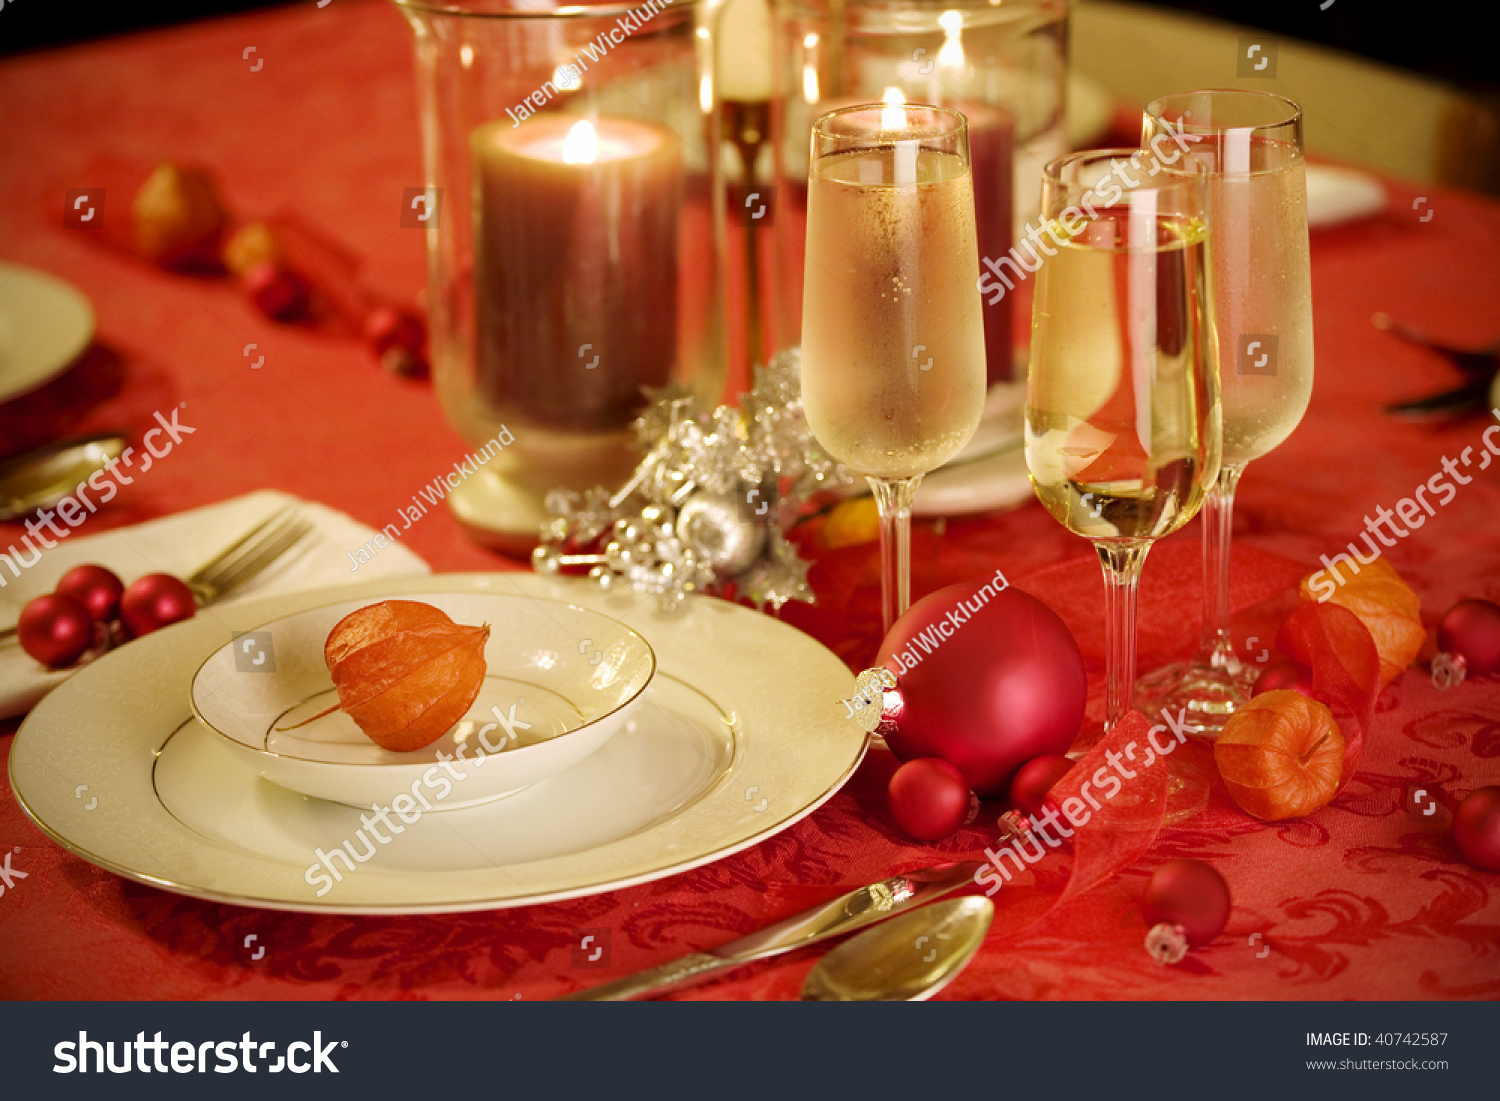 Elegant Christmas table setting in red and gold colors with red Japanese lantern flower as & Elegant Christmas Table Setting Red Gold Stock Photo (Royalty Free ...